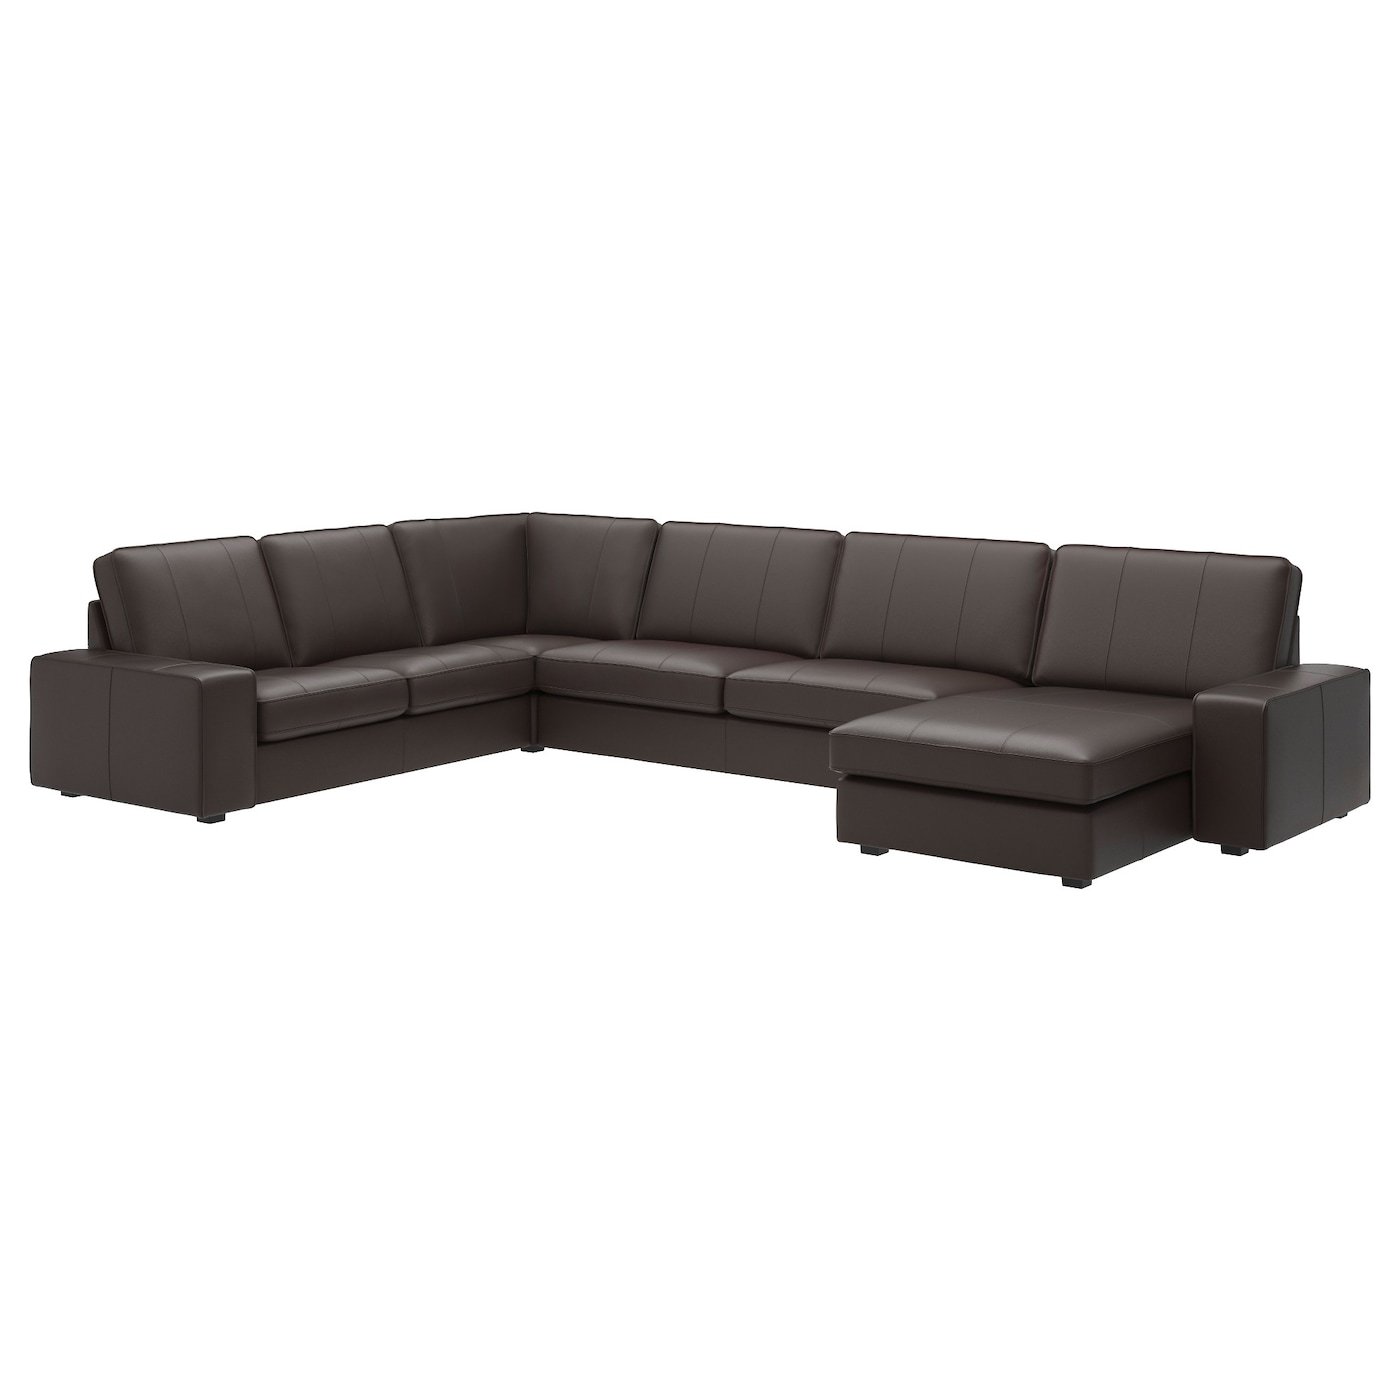 Kivik corner sofa 6 seat with chaise longue grann bomstad for Brown sectional sofa with chaise